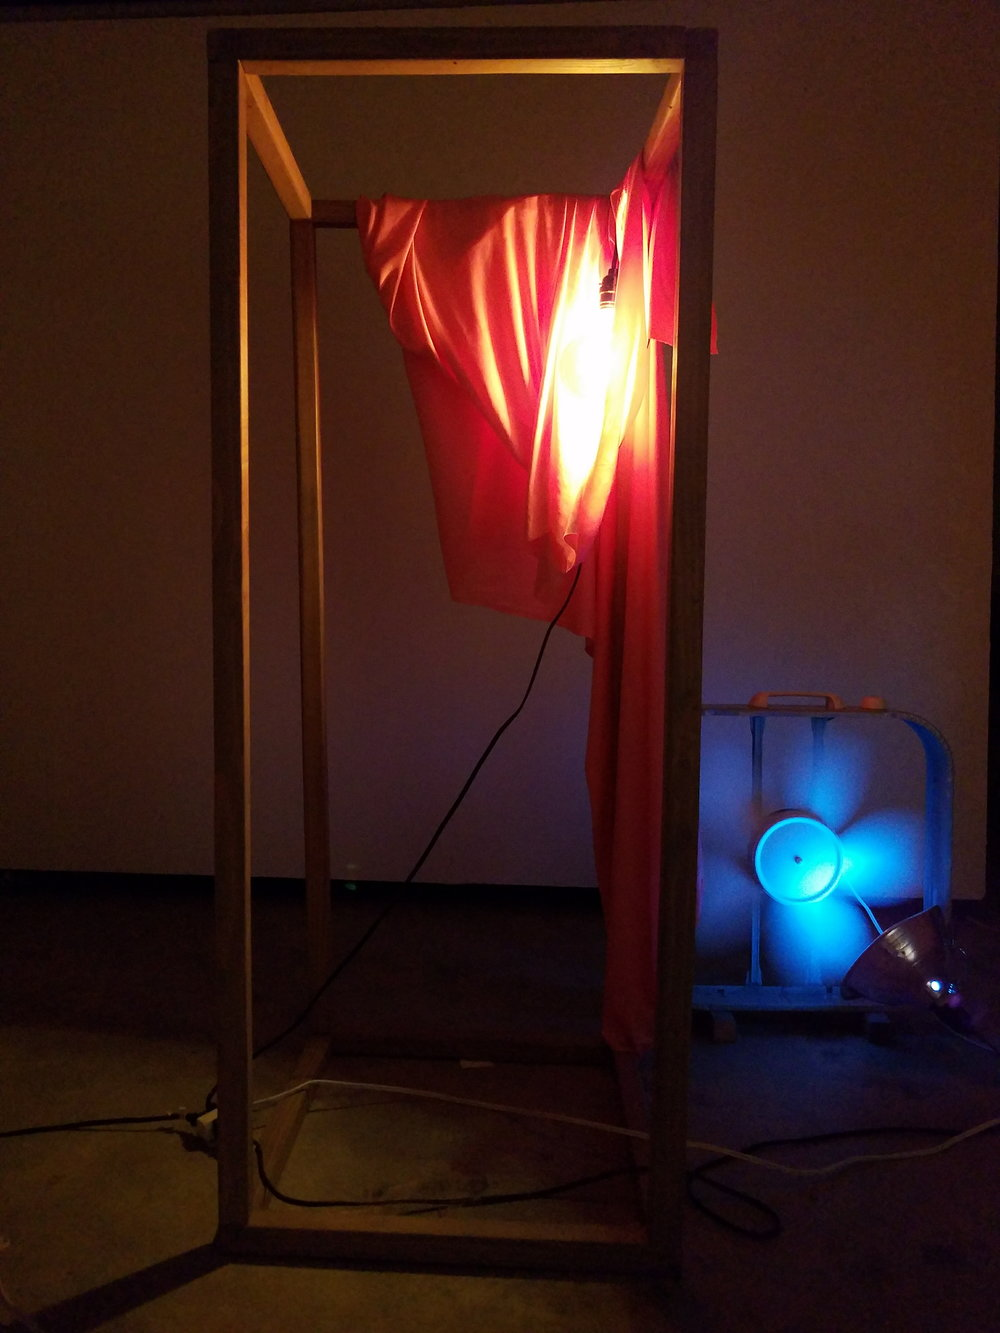 """OCCUPATIONS (tests) - by Maggie Heath.Physical installation. June 2017 - October 2017""""But woman's allegedly definitive tendency to put the inside on the outside could provoke quite another reaction.""""The Gender of Sound, Anne Carson""""Colors appear connected predominantly in space. Therefor, as constellations they can be seen in any direction and at any speed. And as they remain, we can return to them repeatedly and in many ways.""""Interaction of Color, Josef AlbersIn, Occupations, tests I am compiling methods and remenants from various jobs and art exhibitions I have had in the past two years. Materials are left exposed. Process available. Simple discarded moments make up the sourcing of material. Tableaus put together, forced into simple structures. The colors considered—they are part of our vision. Color, how we grasp onto sight, allowed with variations of light allowed in.Maggie Heath is a Portland artist whose work rests in considering the space a body inhabits. Heath received her BFA from Portland State University in 2015 and has been awarded an honorable mention in ISC's Outstanding Student Achievement in Contemporary Sculpture Award Program, the Kamelia Massih Outstanding Student Prize in the Arts, and received a 2015 Precipice Fund from Portland Institute for Contemporary Art. Her work has been seen at various galleries throughout Portland including: Surplus Space, Timeshare Gallery, MK Gallery, AB Lobby Gallery, galleryHomeland, Autzen Gallery, 511 Commons, Blackfish Gallery, Short Space, and was part of a group exhibition at Virginia Commonwealth University. Heath is co-founder of Bronco Gallery, an alternative gallery space that is based out of a 1991 Ford Bronco."""